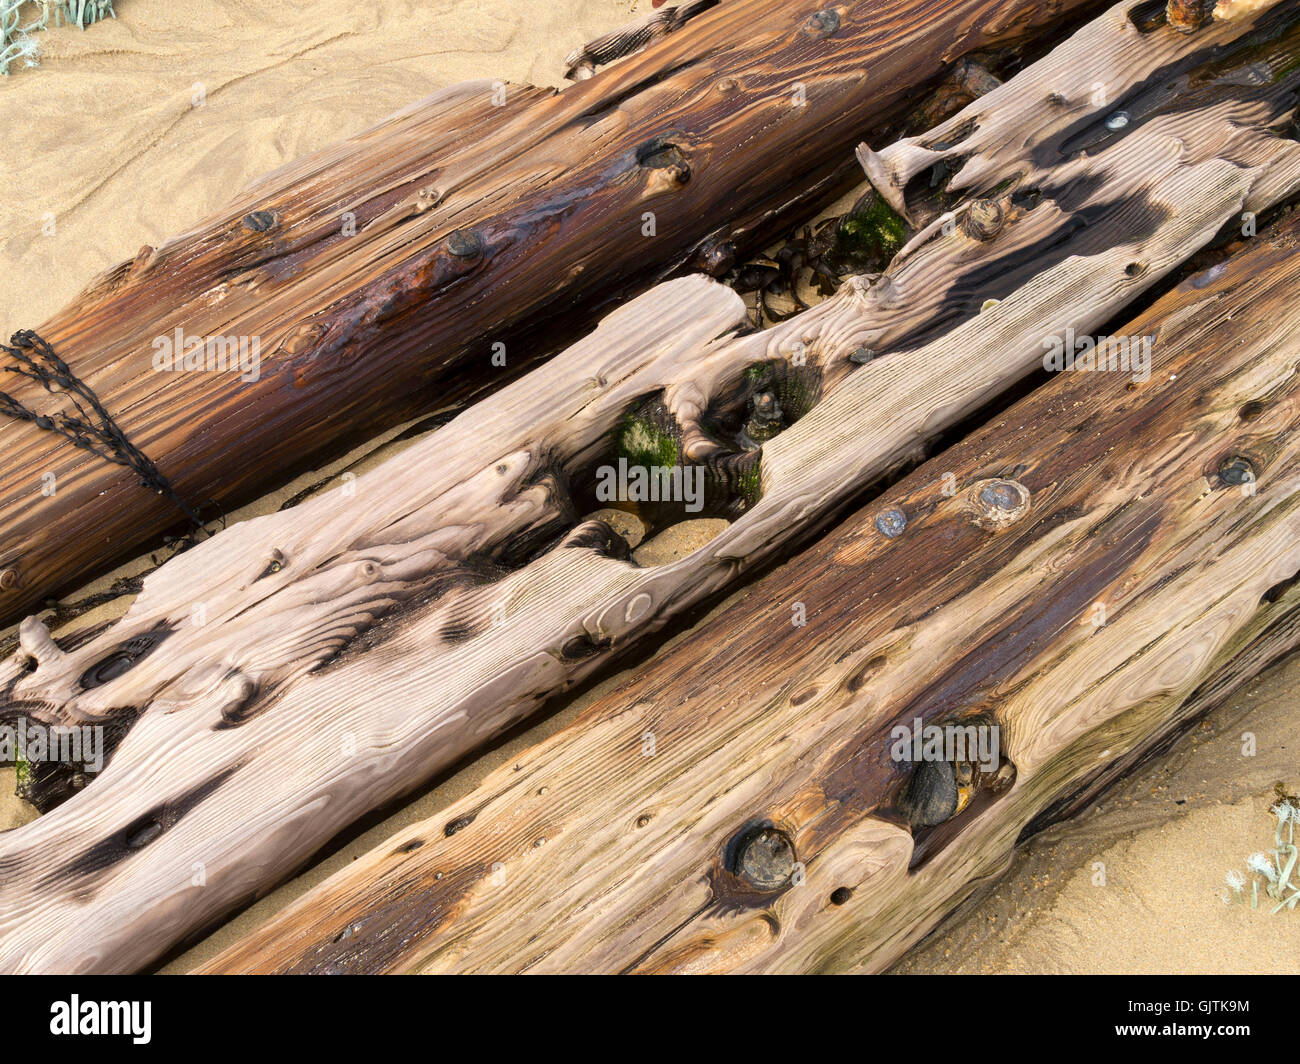 Old oak shipwreck timbers buried in beach sand, Balnahard Beach, Isle of Colonsay, Scotland, UK. - Stock Image